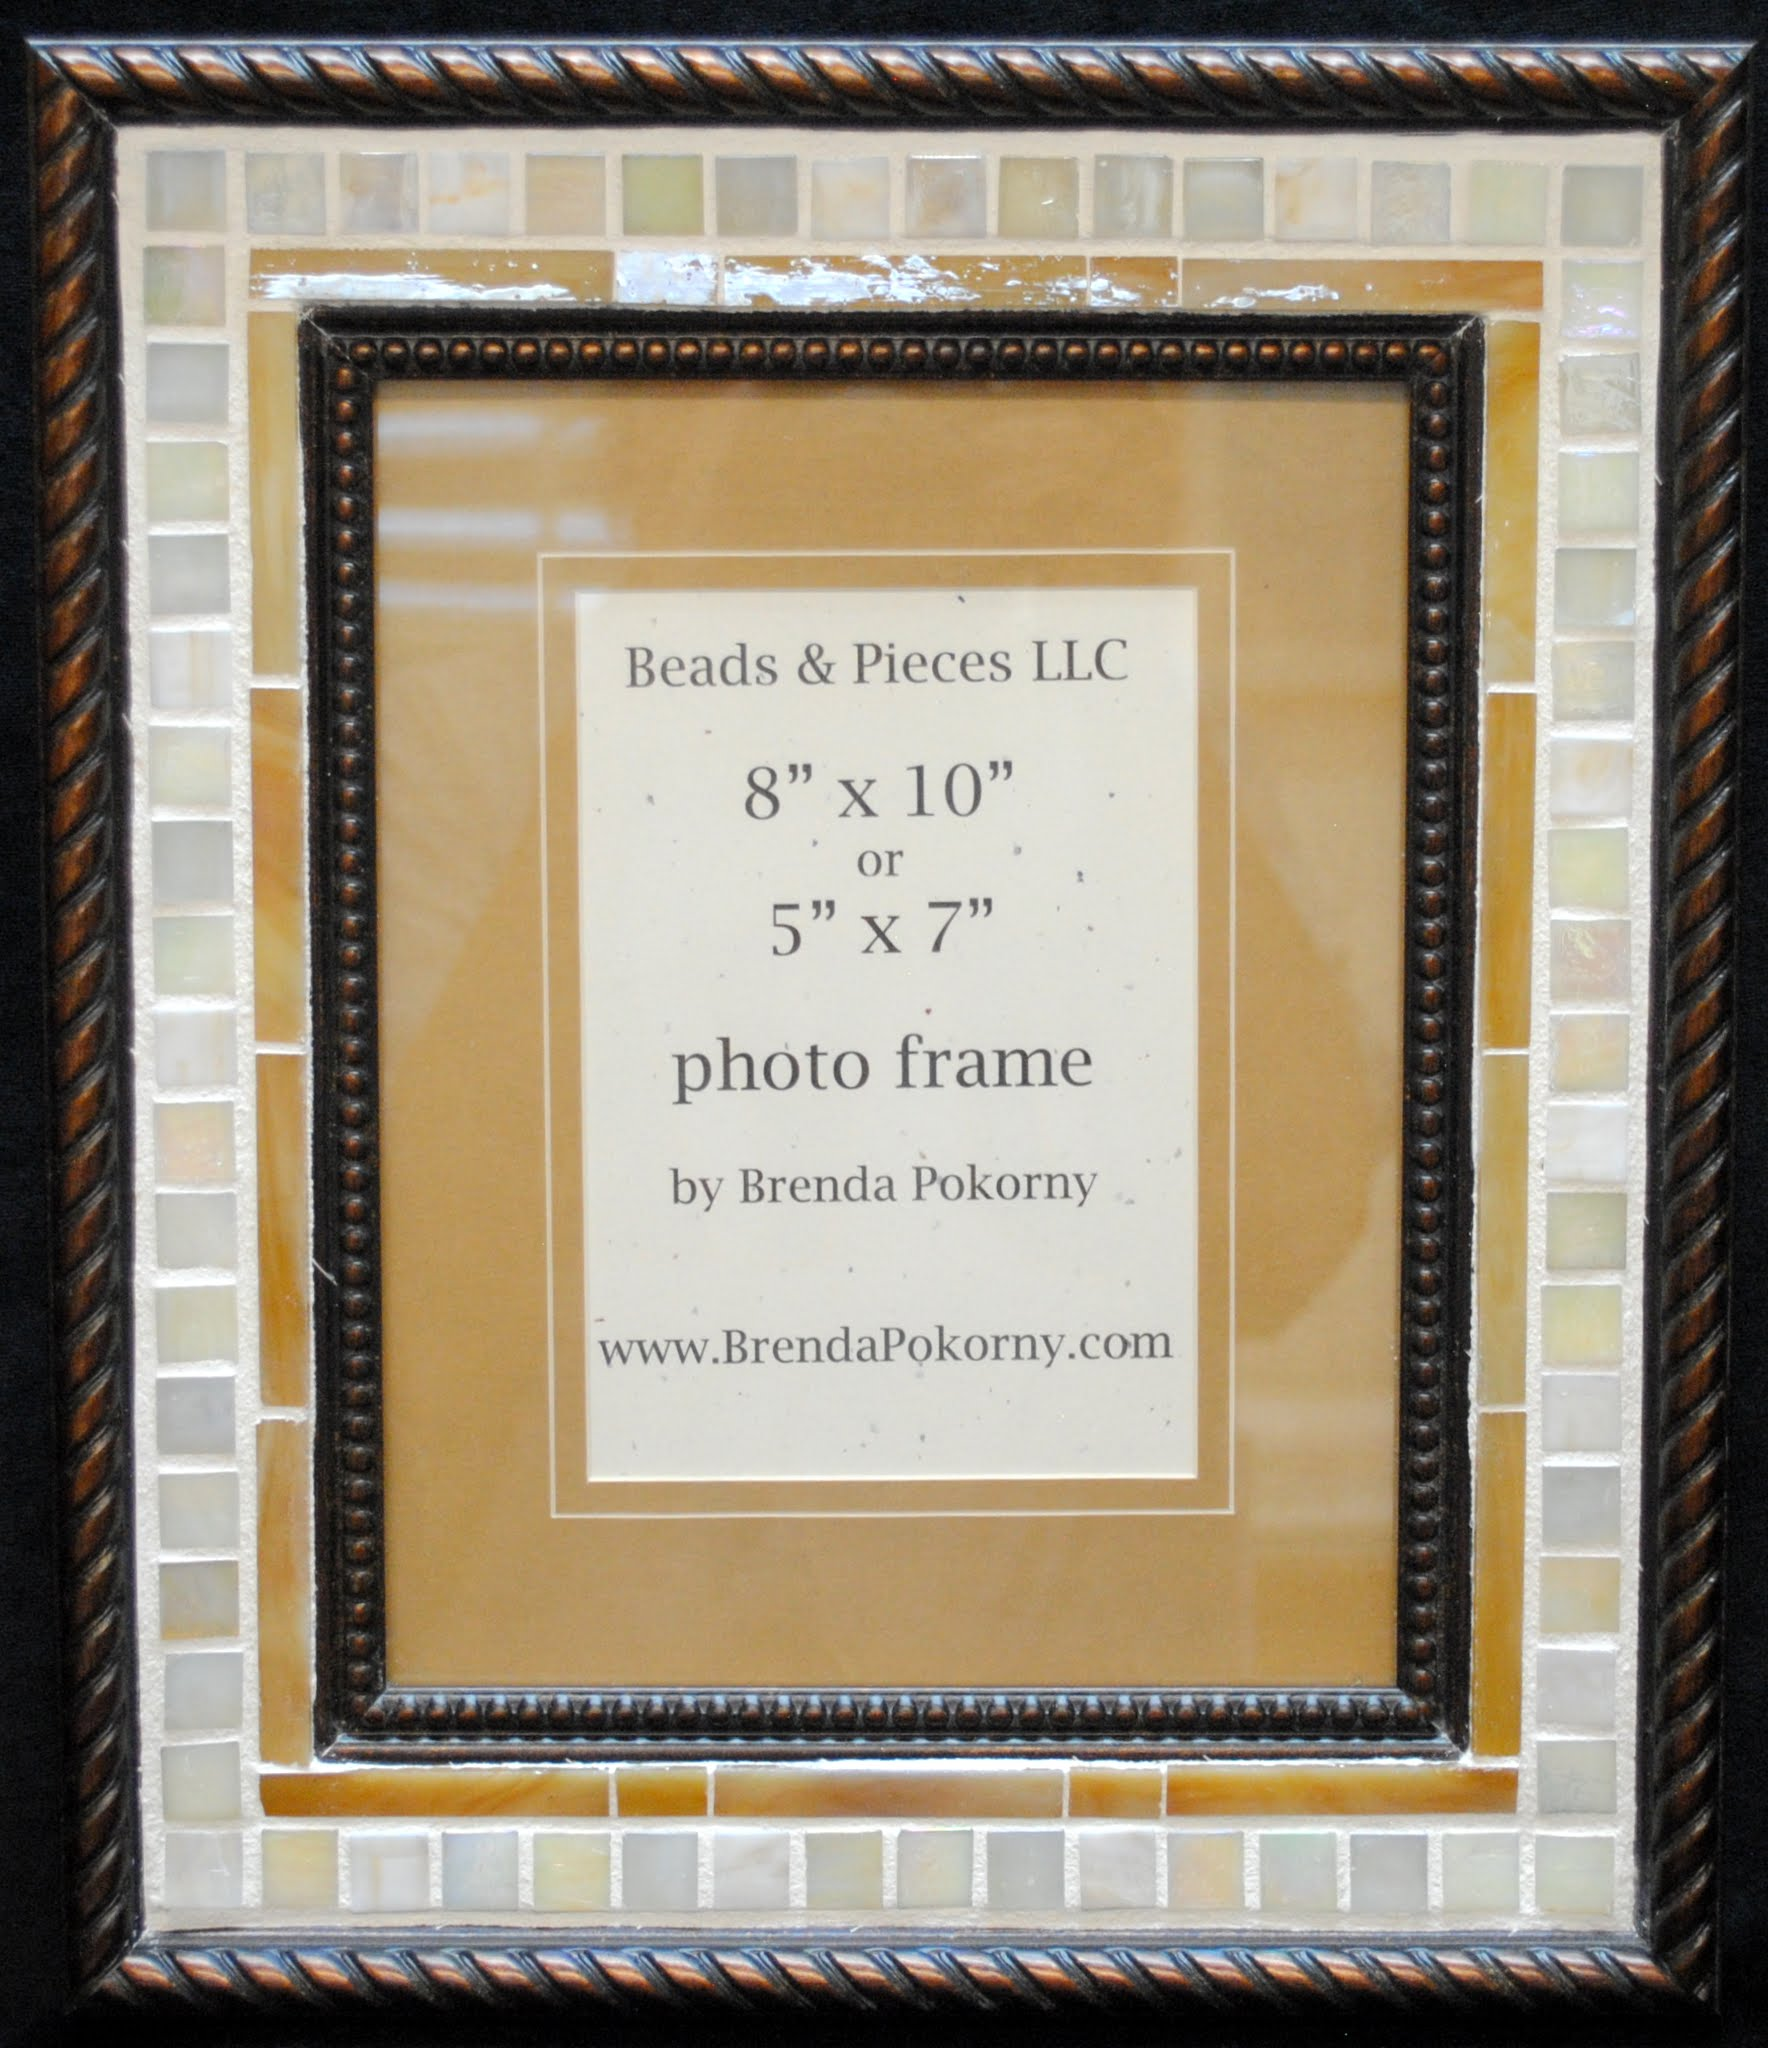 "Ivory & Caramel Mosaic 5"" x 7"" or 8"" x 10"" Photo Wall Frame MOF1454"